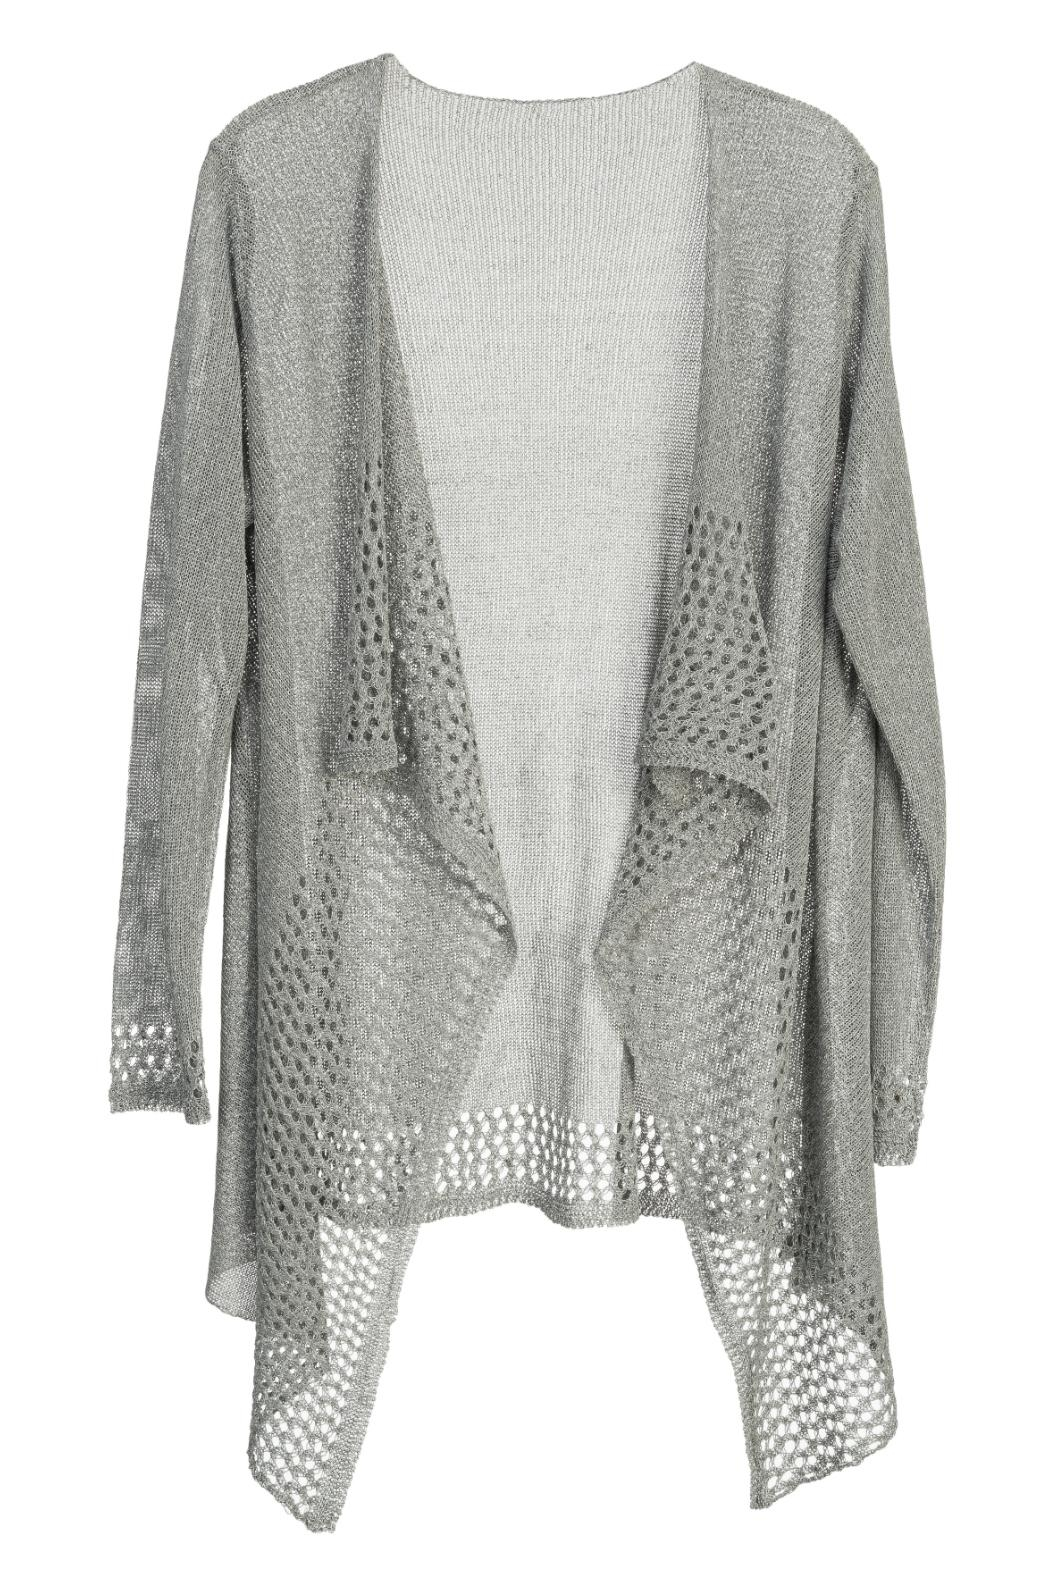 Arianna Open Weave Cover Up - Main Image